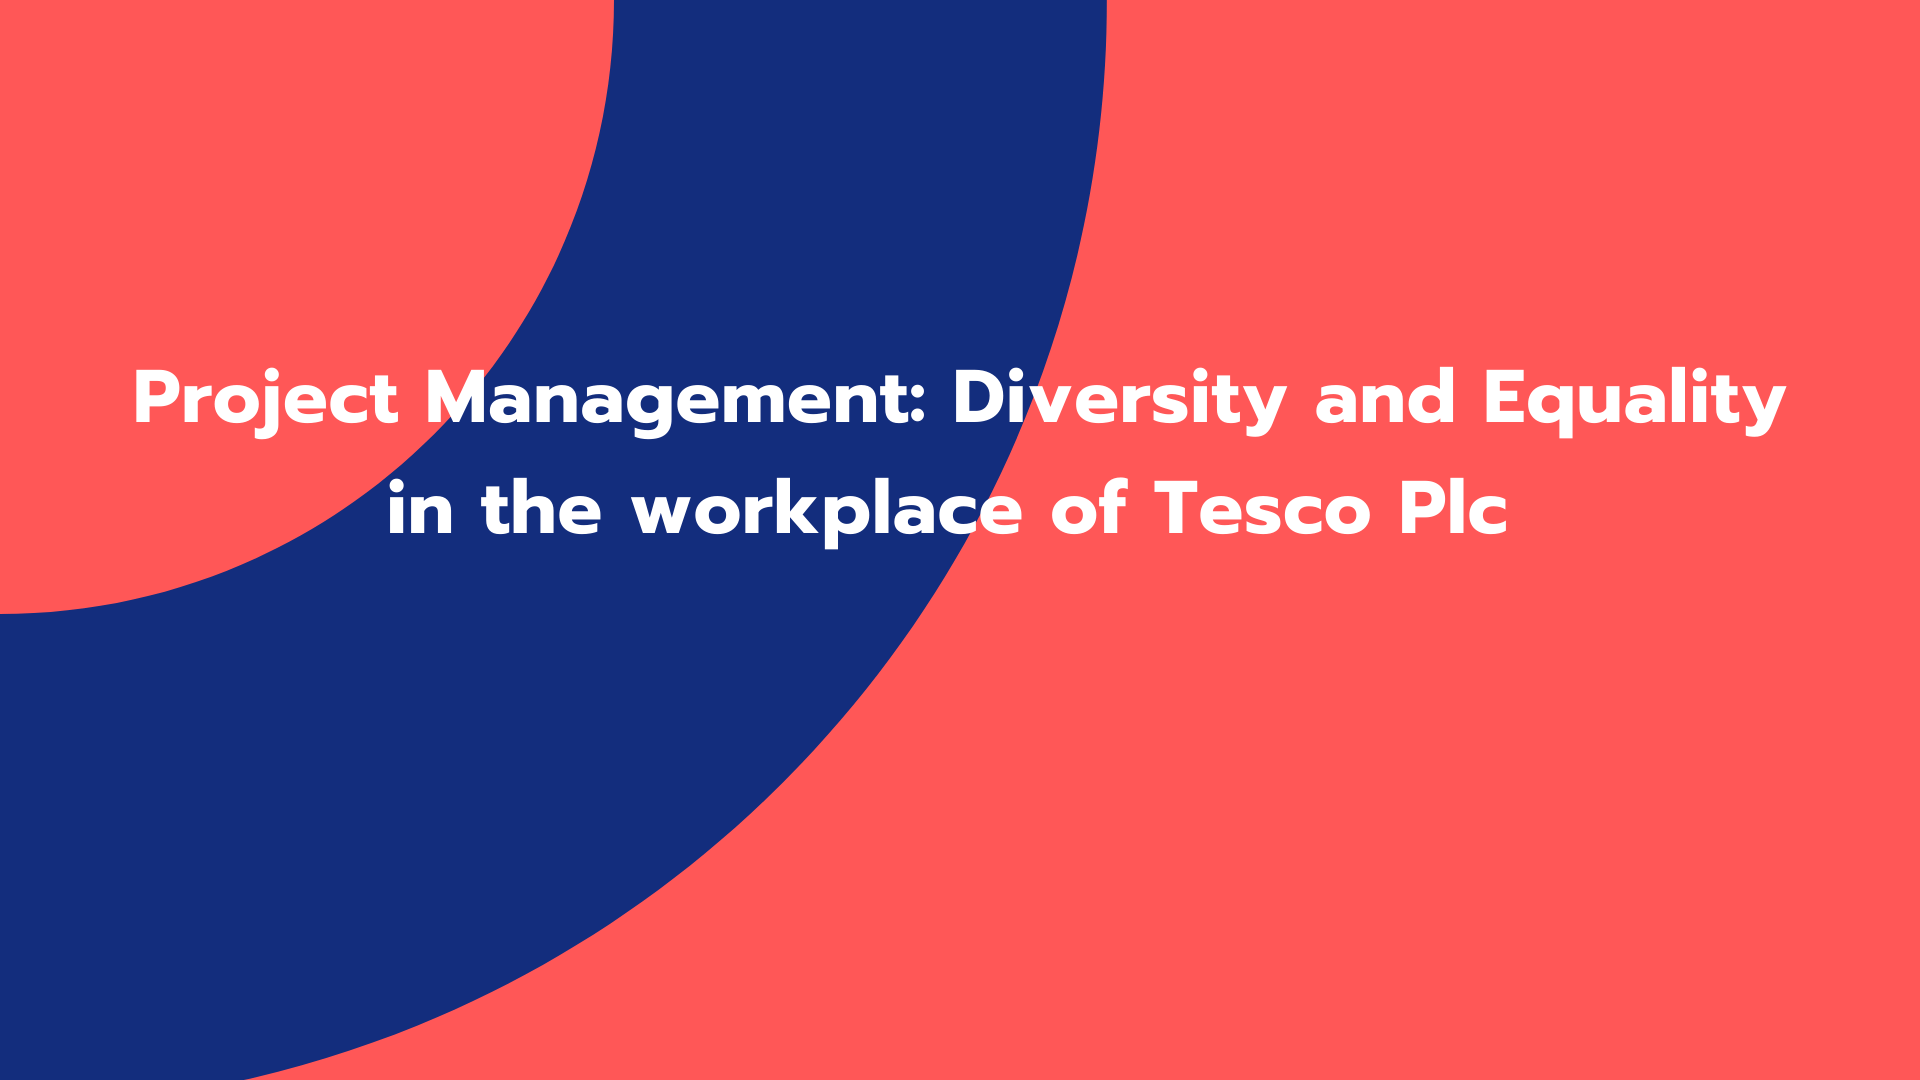 Project Management: Diversity and Equality in the workplace of Tesco Plc